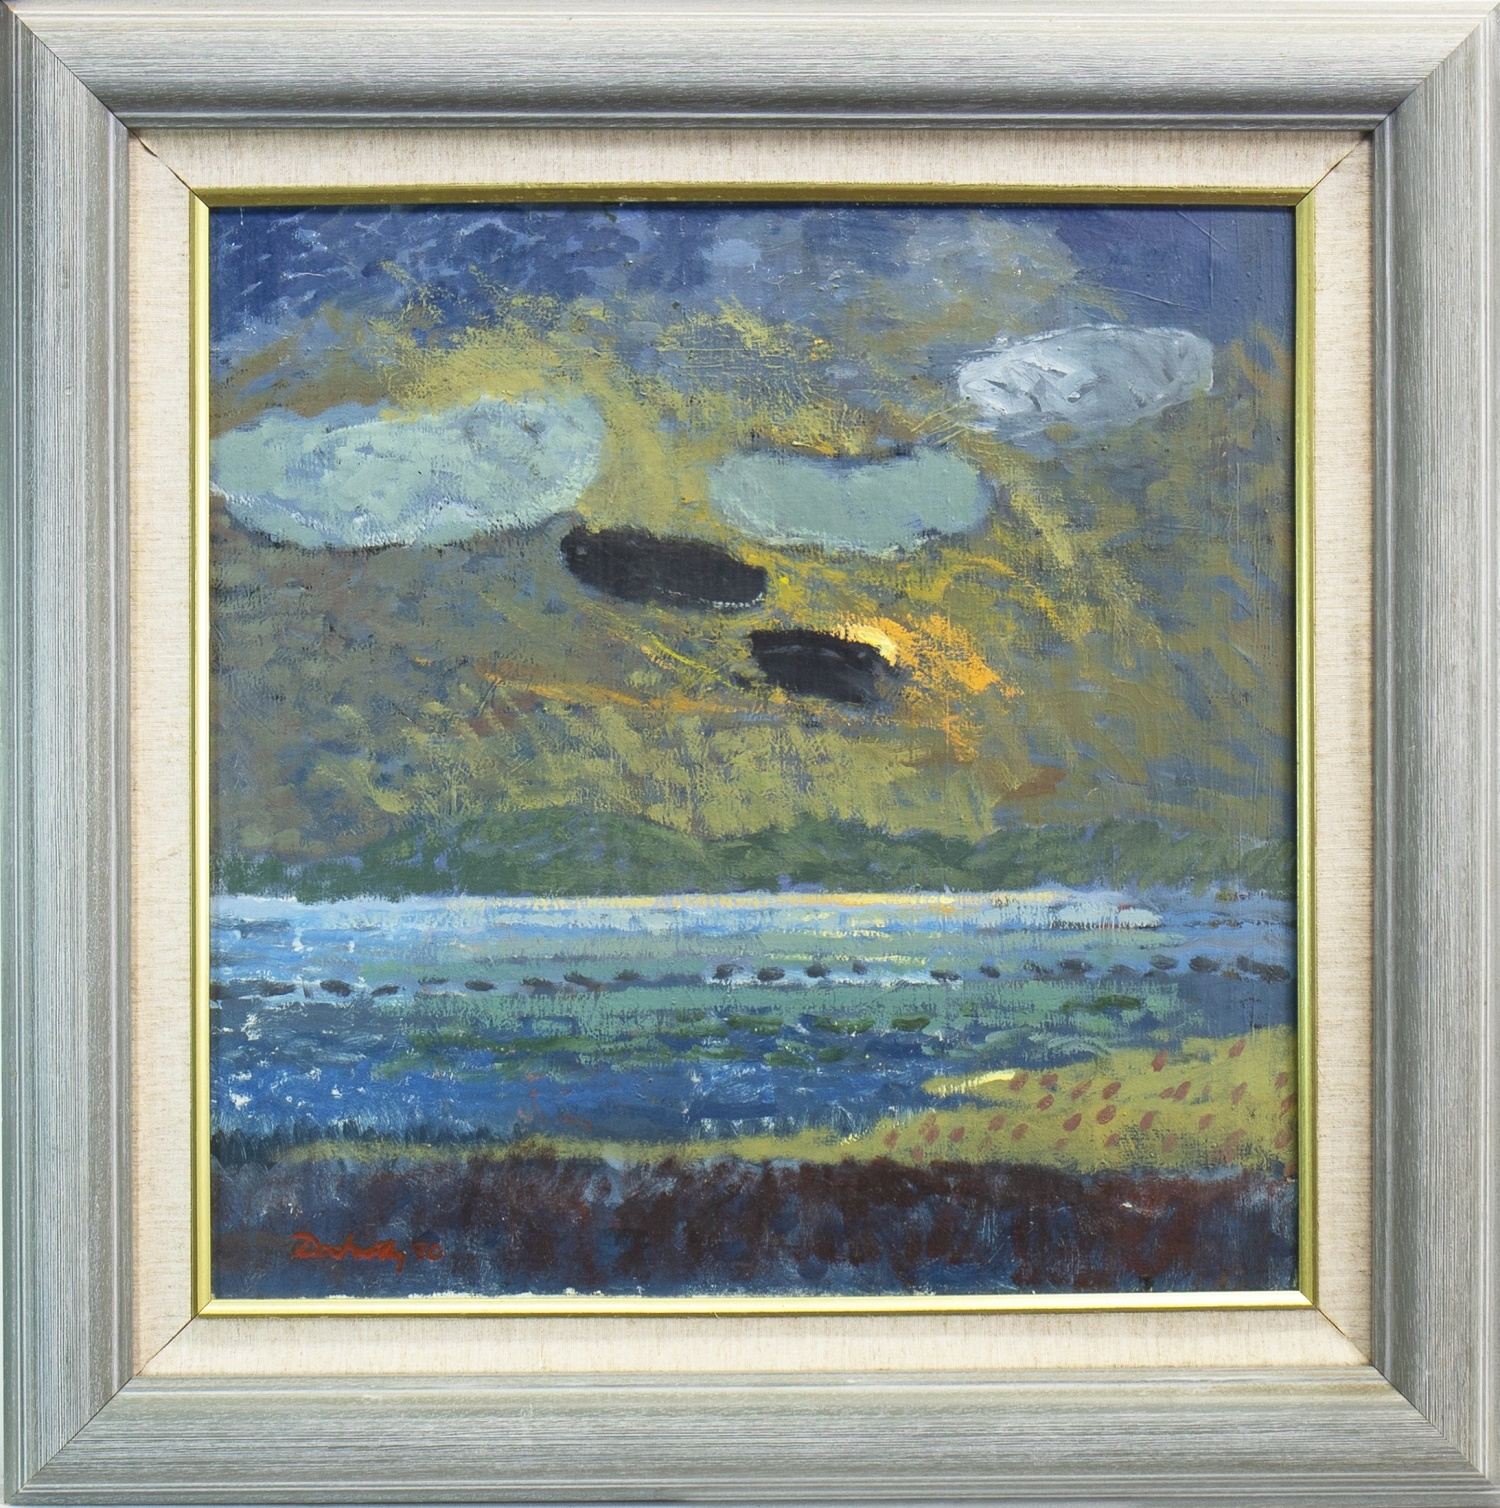 Lot 536 - BLACK CLOUDS, GLENDIG, AN OIL BY FRANK DOCHERTY